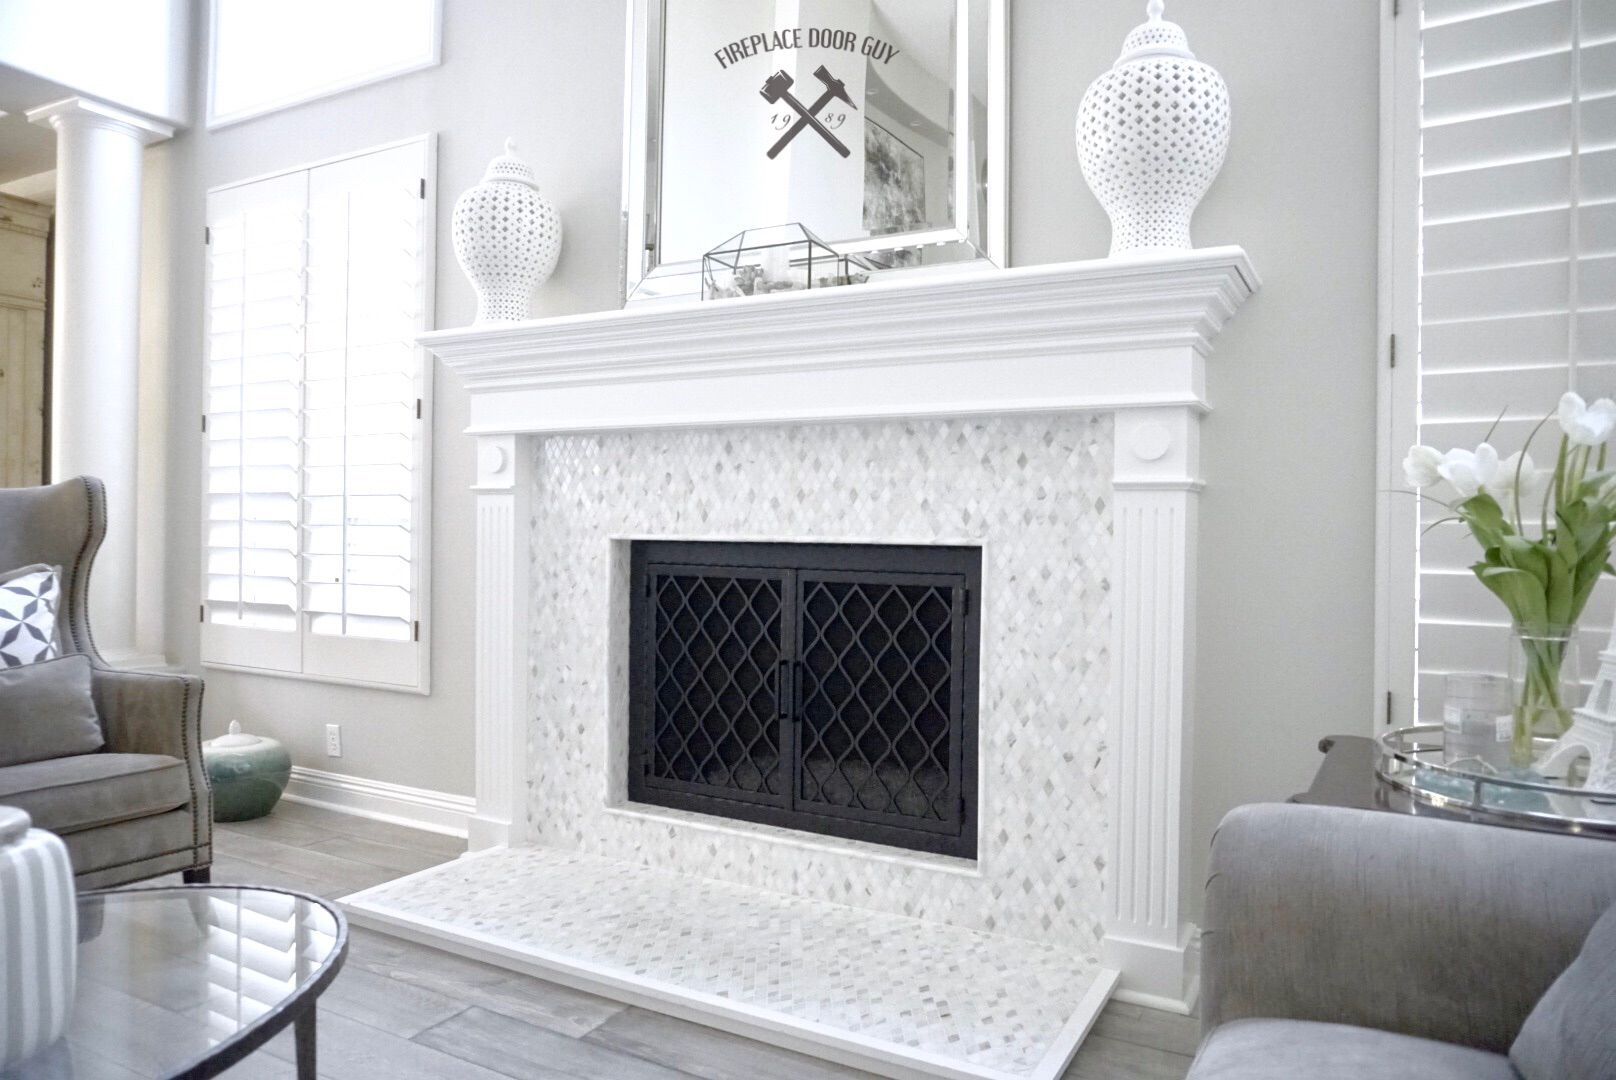 Fireplace Door Guy Finished Off This All White Remodel With Our Diamond Pattern Custom Screen Irondecor Homegoods Homedecor